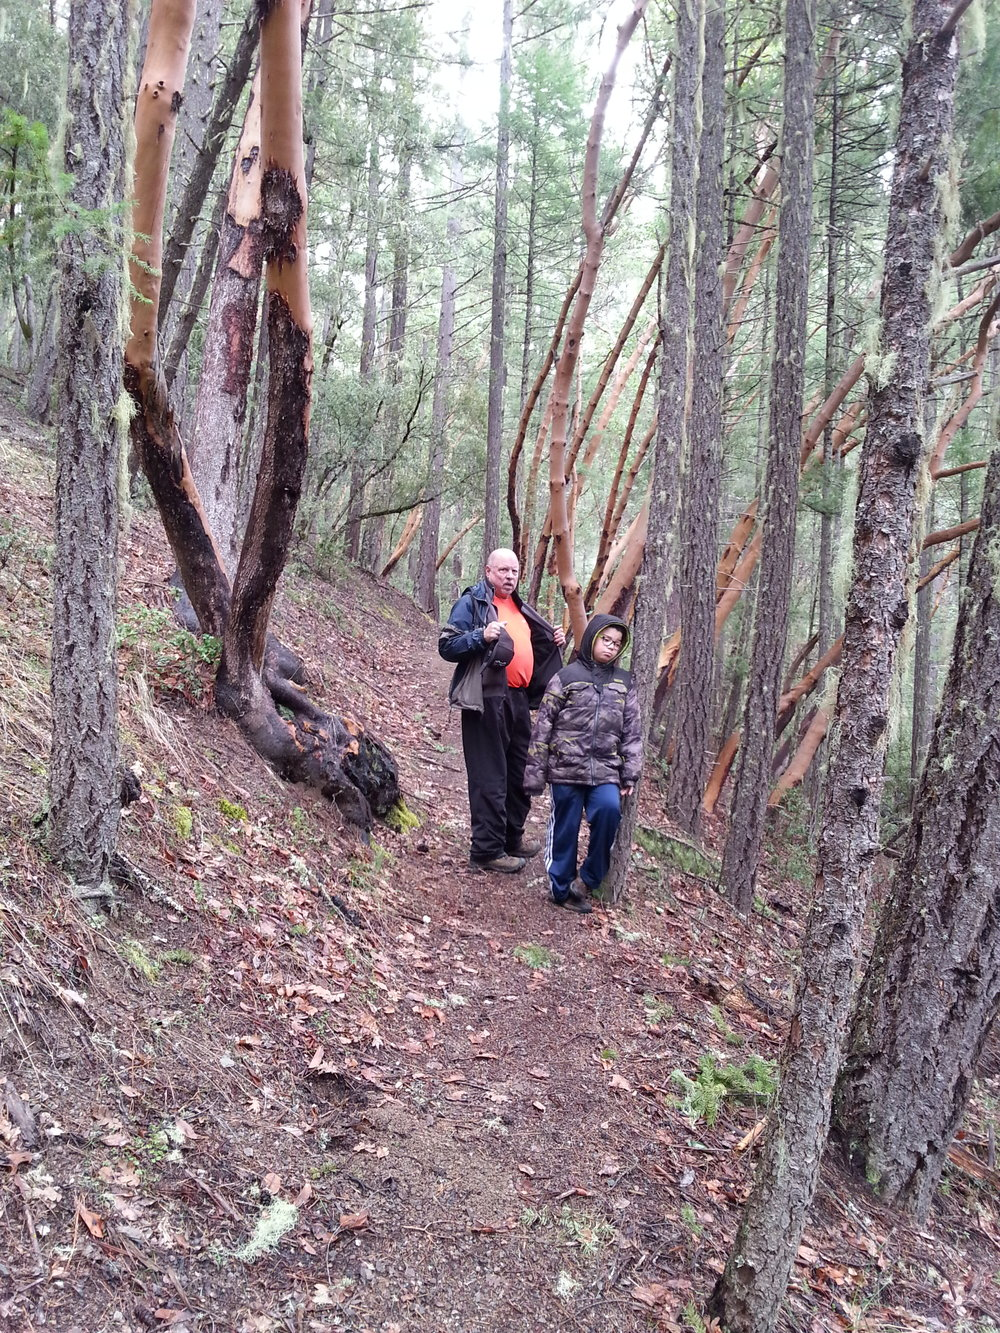 GROUSE LOOP TRAIL - What to do in Southern Oregon - Things to do - Hiking - Kids - Applegate - Jacksonville